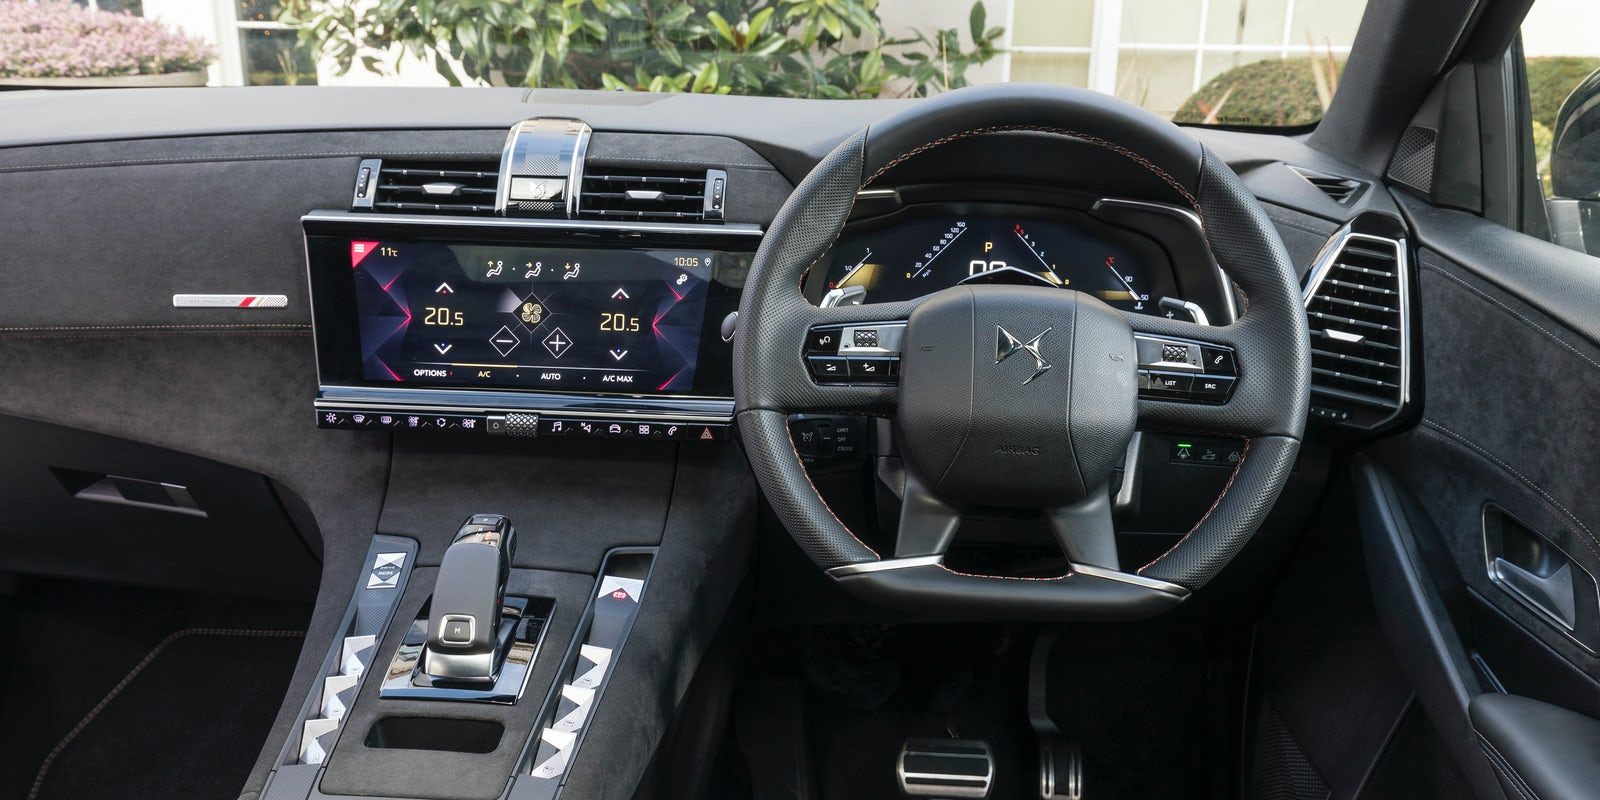 Ds 7 Crossback Interior Amp Infotainment Carwow